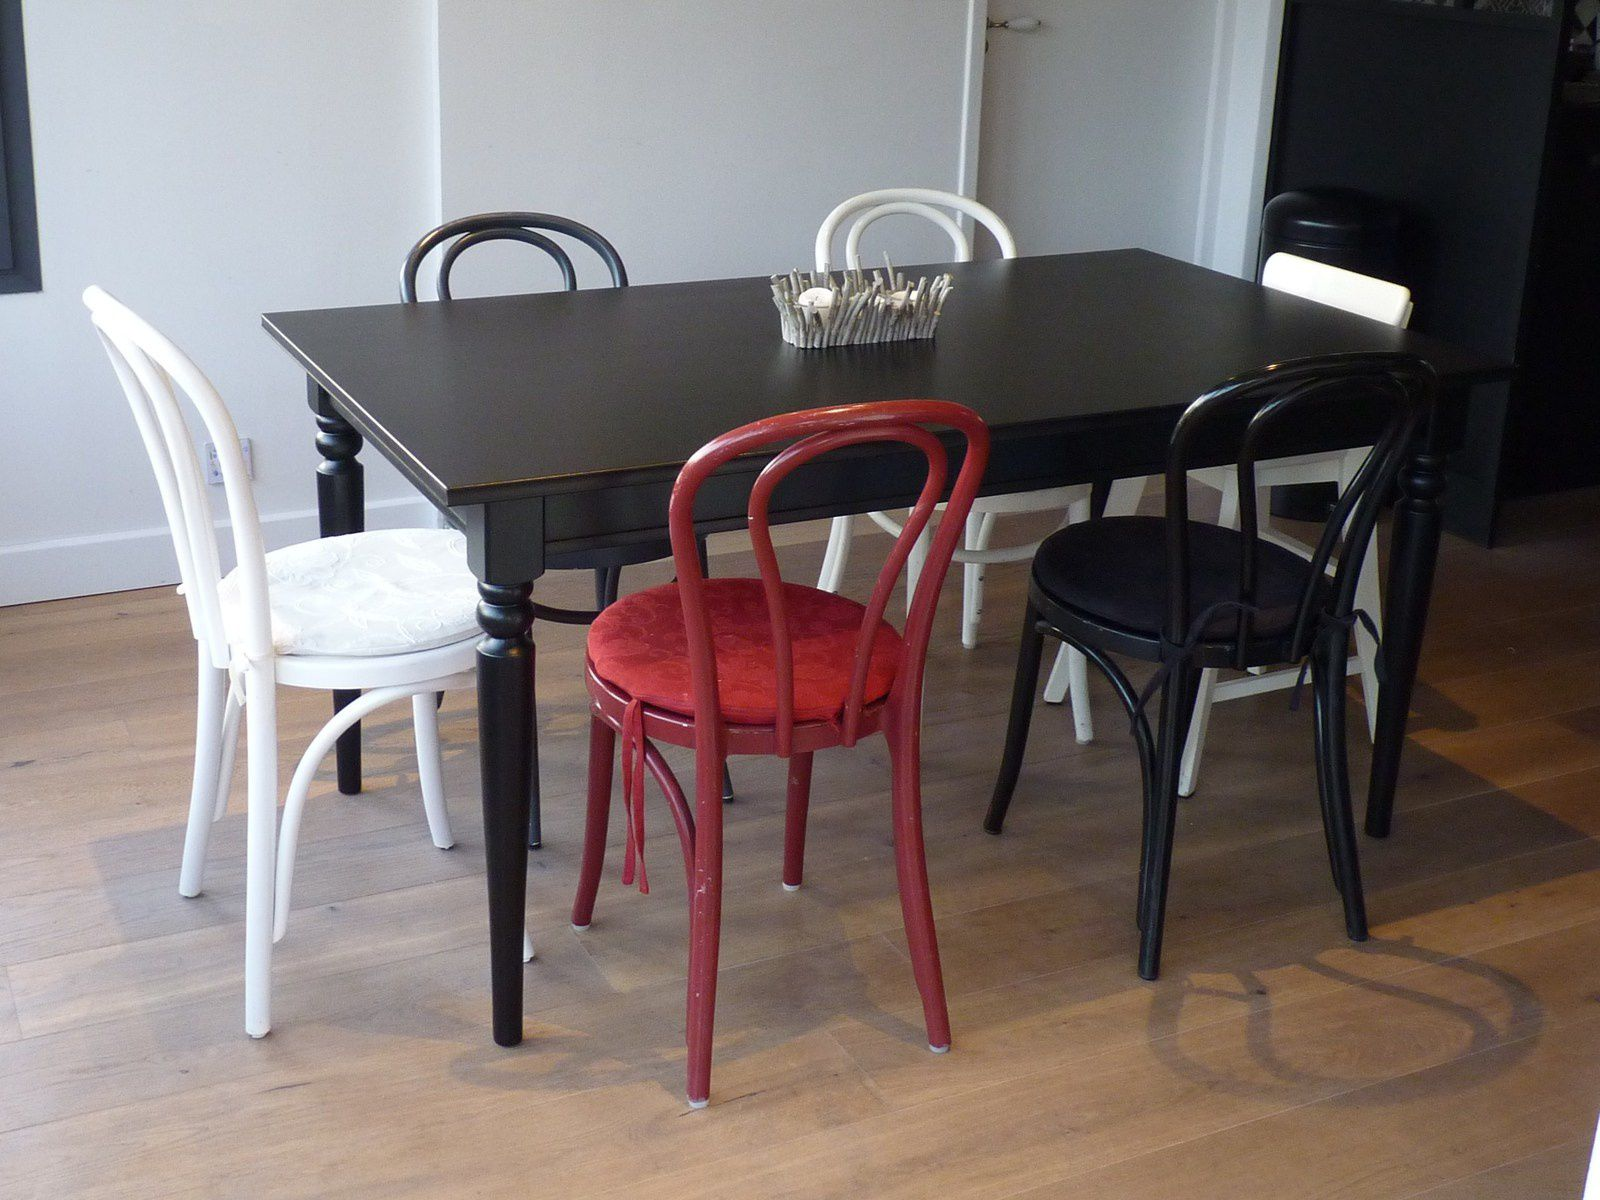 table blanche ou noire avec ma verri re de cuisine photos essais d co ikea ingatorp fashion maman. Black Bedroom Furniture Sets. Home Design Ideas